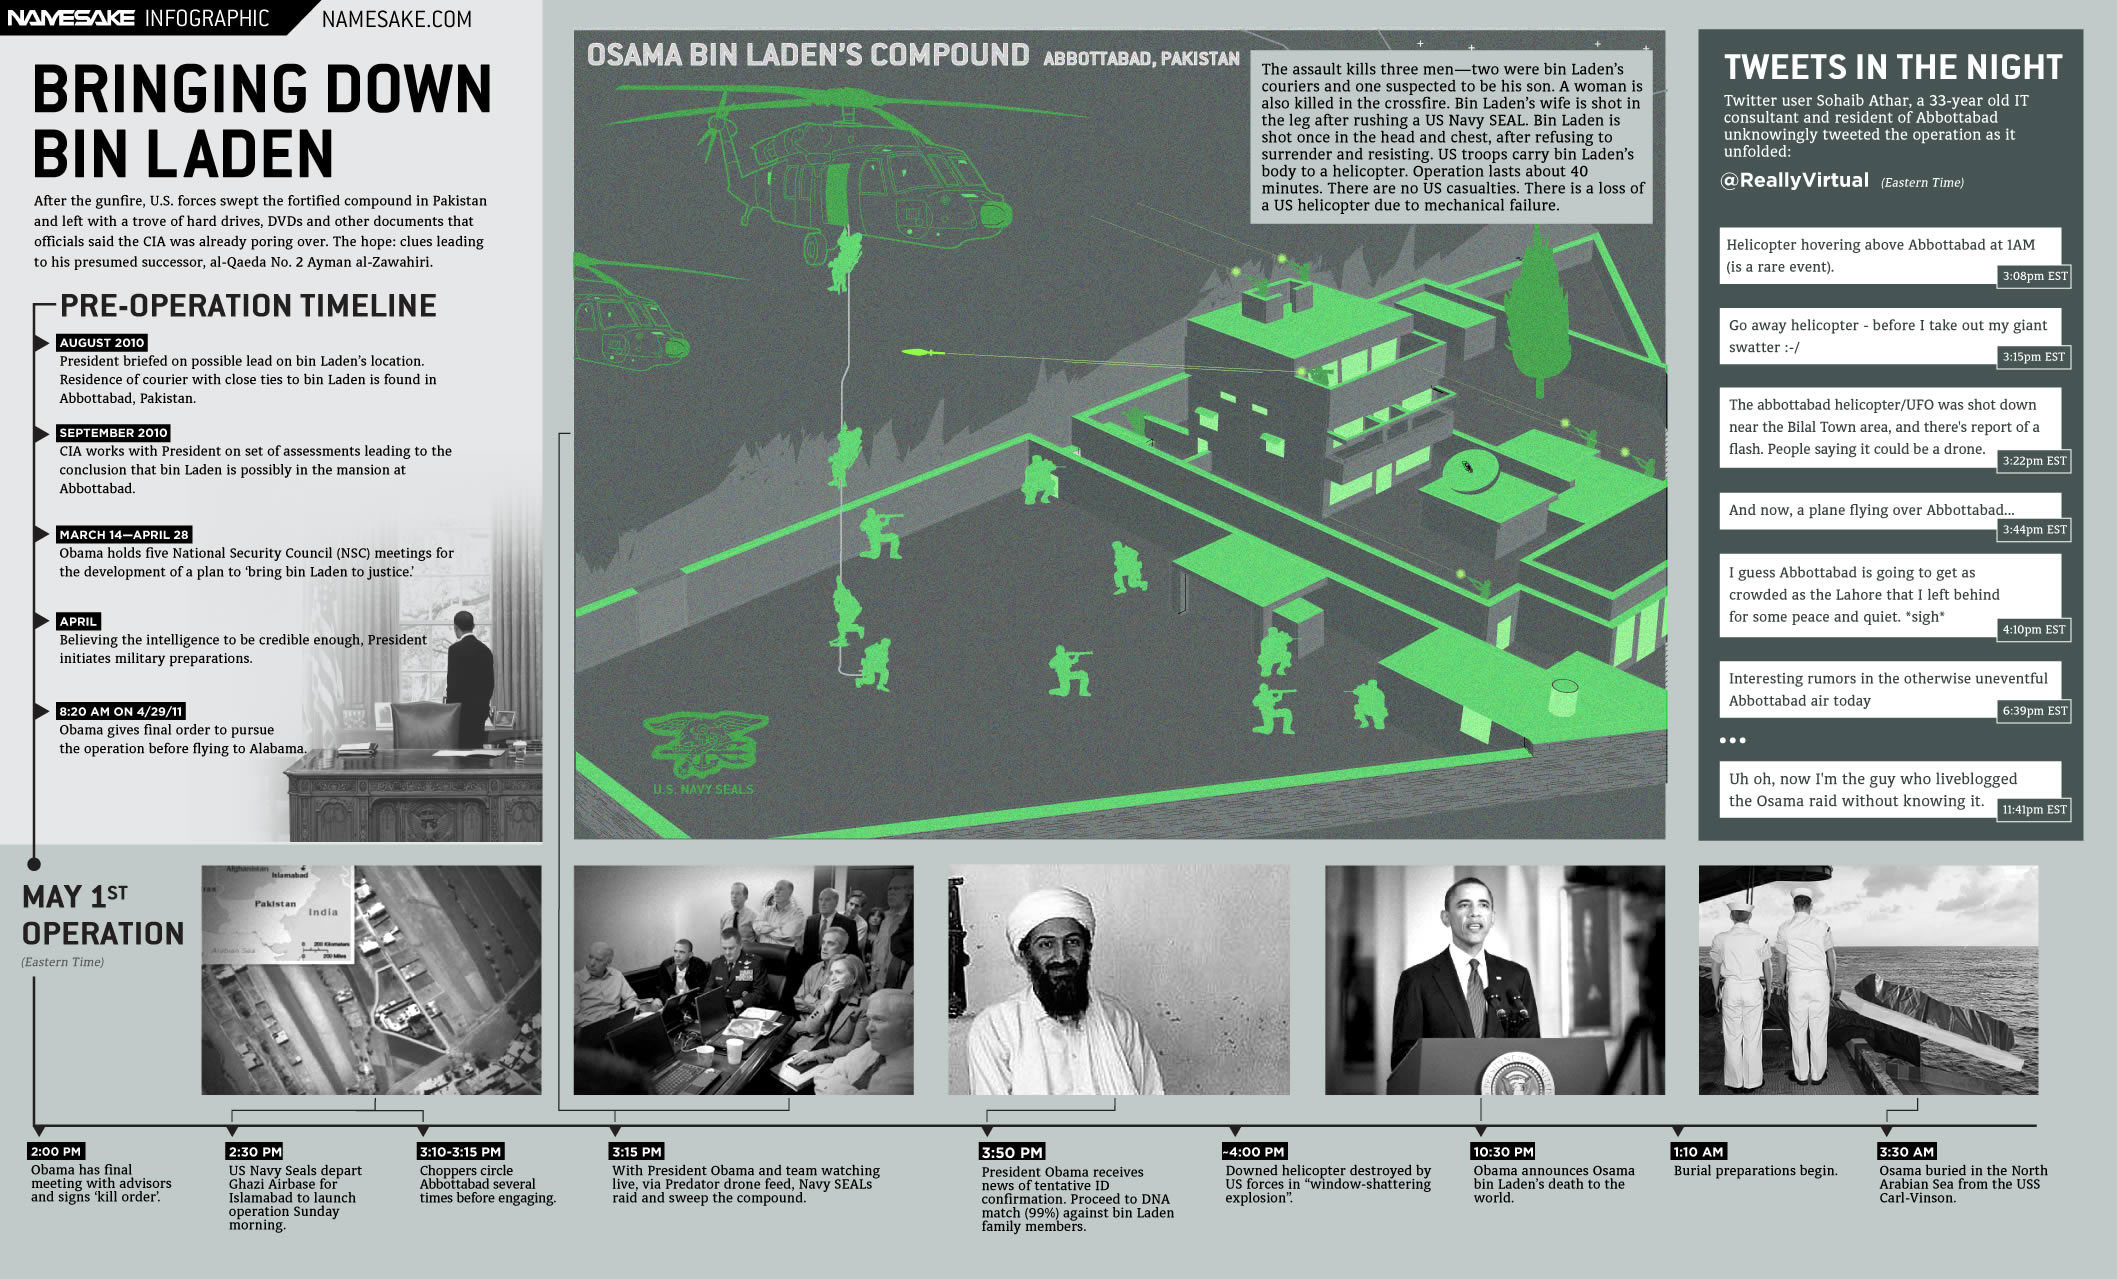 bringing-down-bin-laden_50290b55c1a3e